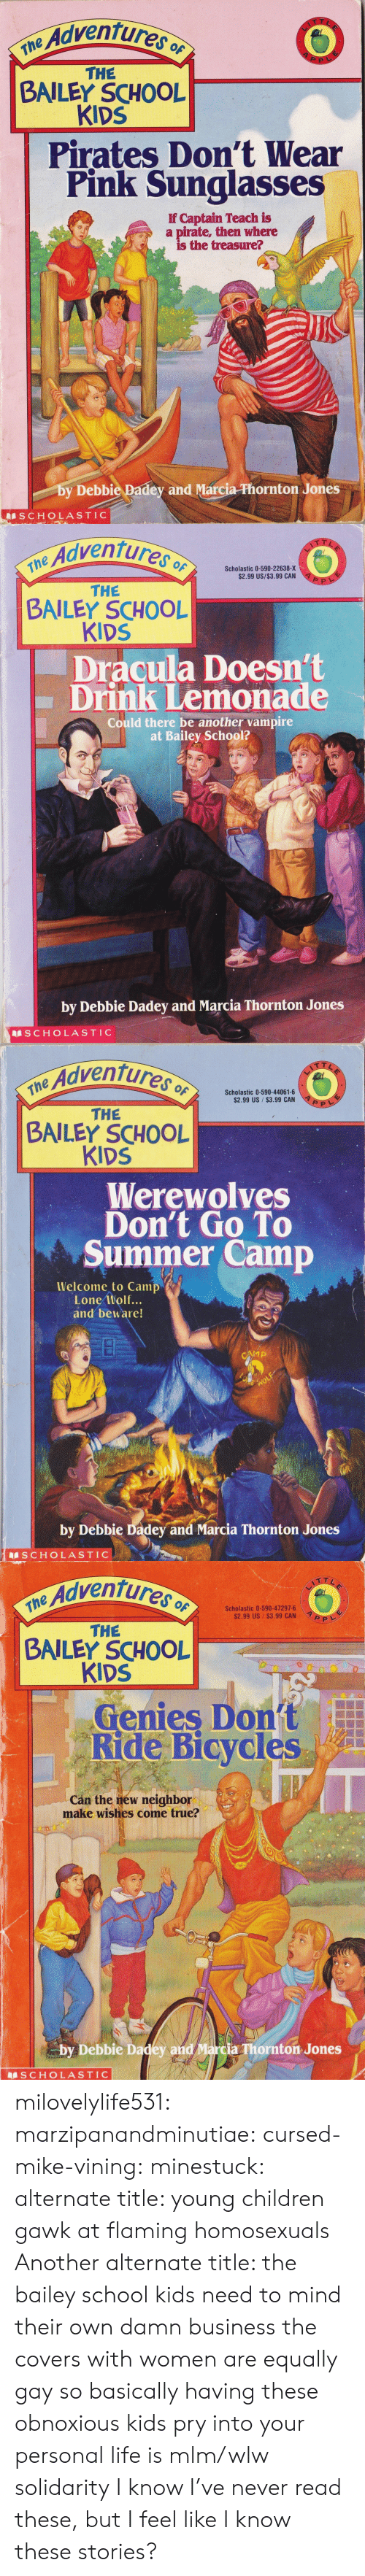 Lone: Adventures o  ne  THE  BAILEY SCHOOL  KIDS  Pirates Don't Wear  Pink Sunglasses  If Captain Teach is  a pirate, then where  is the treasure?  by Debbie Padey and Marcia-Phornton Jones  SCHOLASTIC   Adventures  the Advent  Scholastic 0-590-22638-X  $2.99 US/$3.99 CAN  THE  BAILEY SCHOOL  KIDS  Dracula Doesn't  Drink Lemonade  Could there be another vampire  at Bailey School?  by Debbie Dadey and Marcia Thornton Jones  S CHOLASTIC   Adventures o  $2.99 US $3.99 CAN  THE  BAILEY SCHOOL  KIDS  Werewolves  Don't Go To  Summer Camp  Welcome to Camp  Lone Wolf...  and beware!  by Debbie Dadey and Marcia Thornton Jones  S CHOLASTIC   e Adventures  Scholastic 0-590-47297-6  $2.99 US $3.99 CAN  THE  BAILEY SCHOOL  KIDS  Genies Dont  Ride Bicycles  Cán the new neighbor  make wishes come true?  by Debbie Dadey and Marcia Thornton Jones  SCHOLASTIC milovelylife531: marzipanandminutiae:  cursed-mike-vining:  minestuck:  alternate title: young children gawk at flaming homosexuals   Another alternate title: the bailey school kids need to mind their own damn business  the covers with women are equally gay so basically having these obnoxious kids pry into your personal life is mlm/wlw solidarity   I know I've never read these, but I feel like I know these stories?